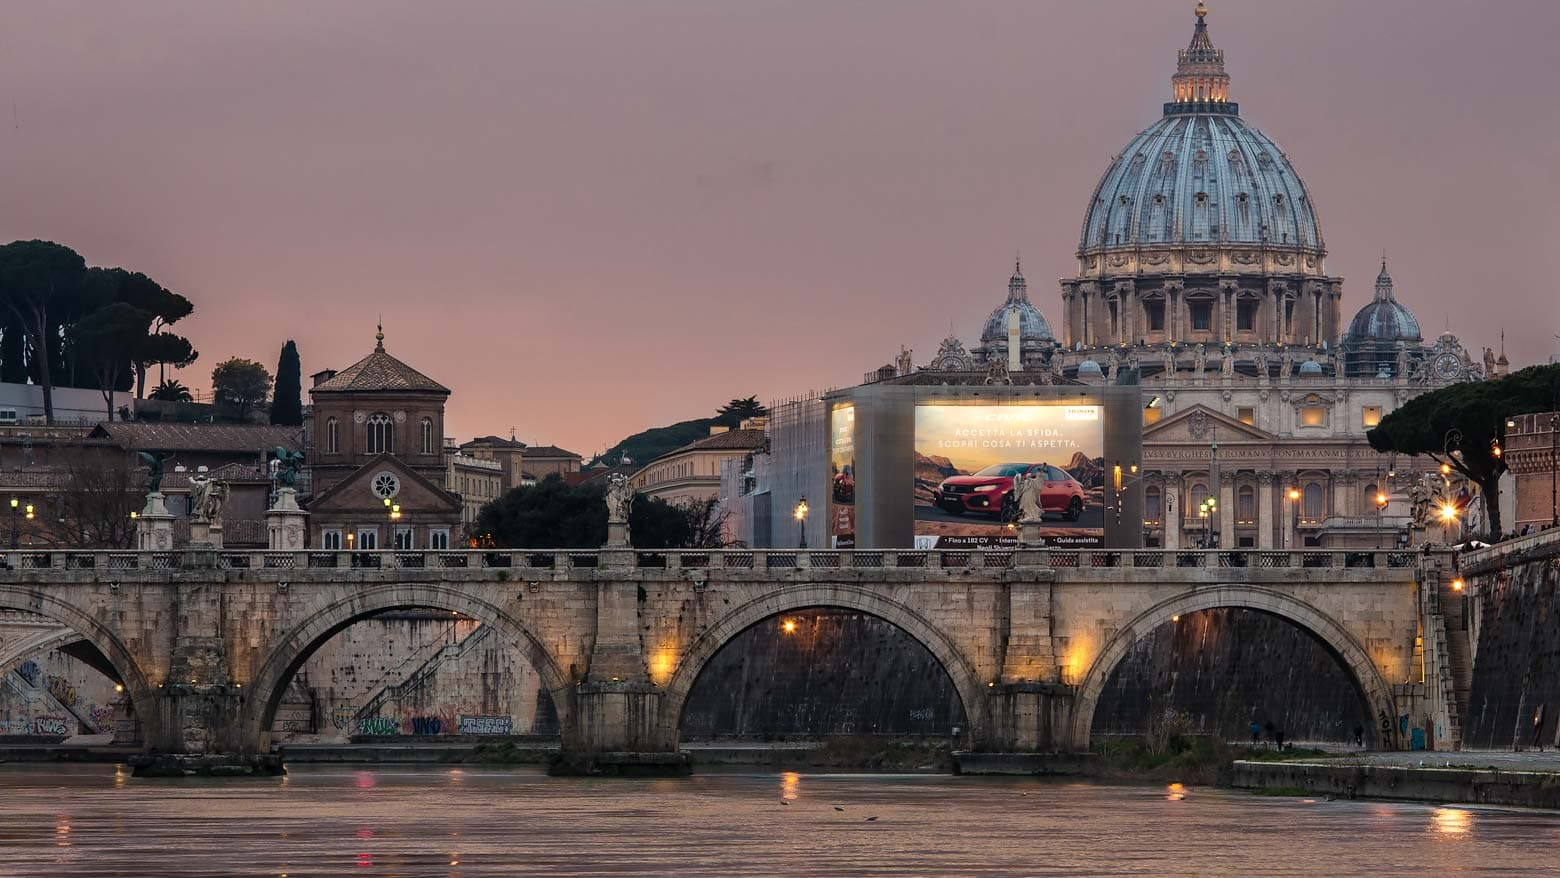 dome of the vatican city and the river Tiber on sunset